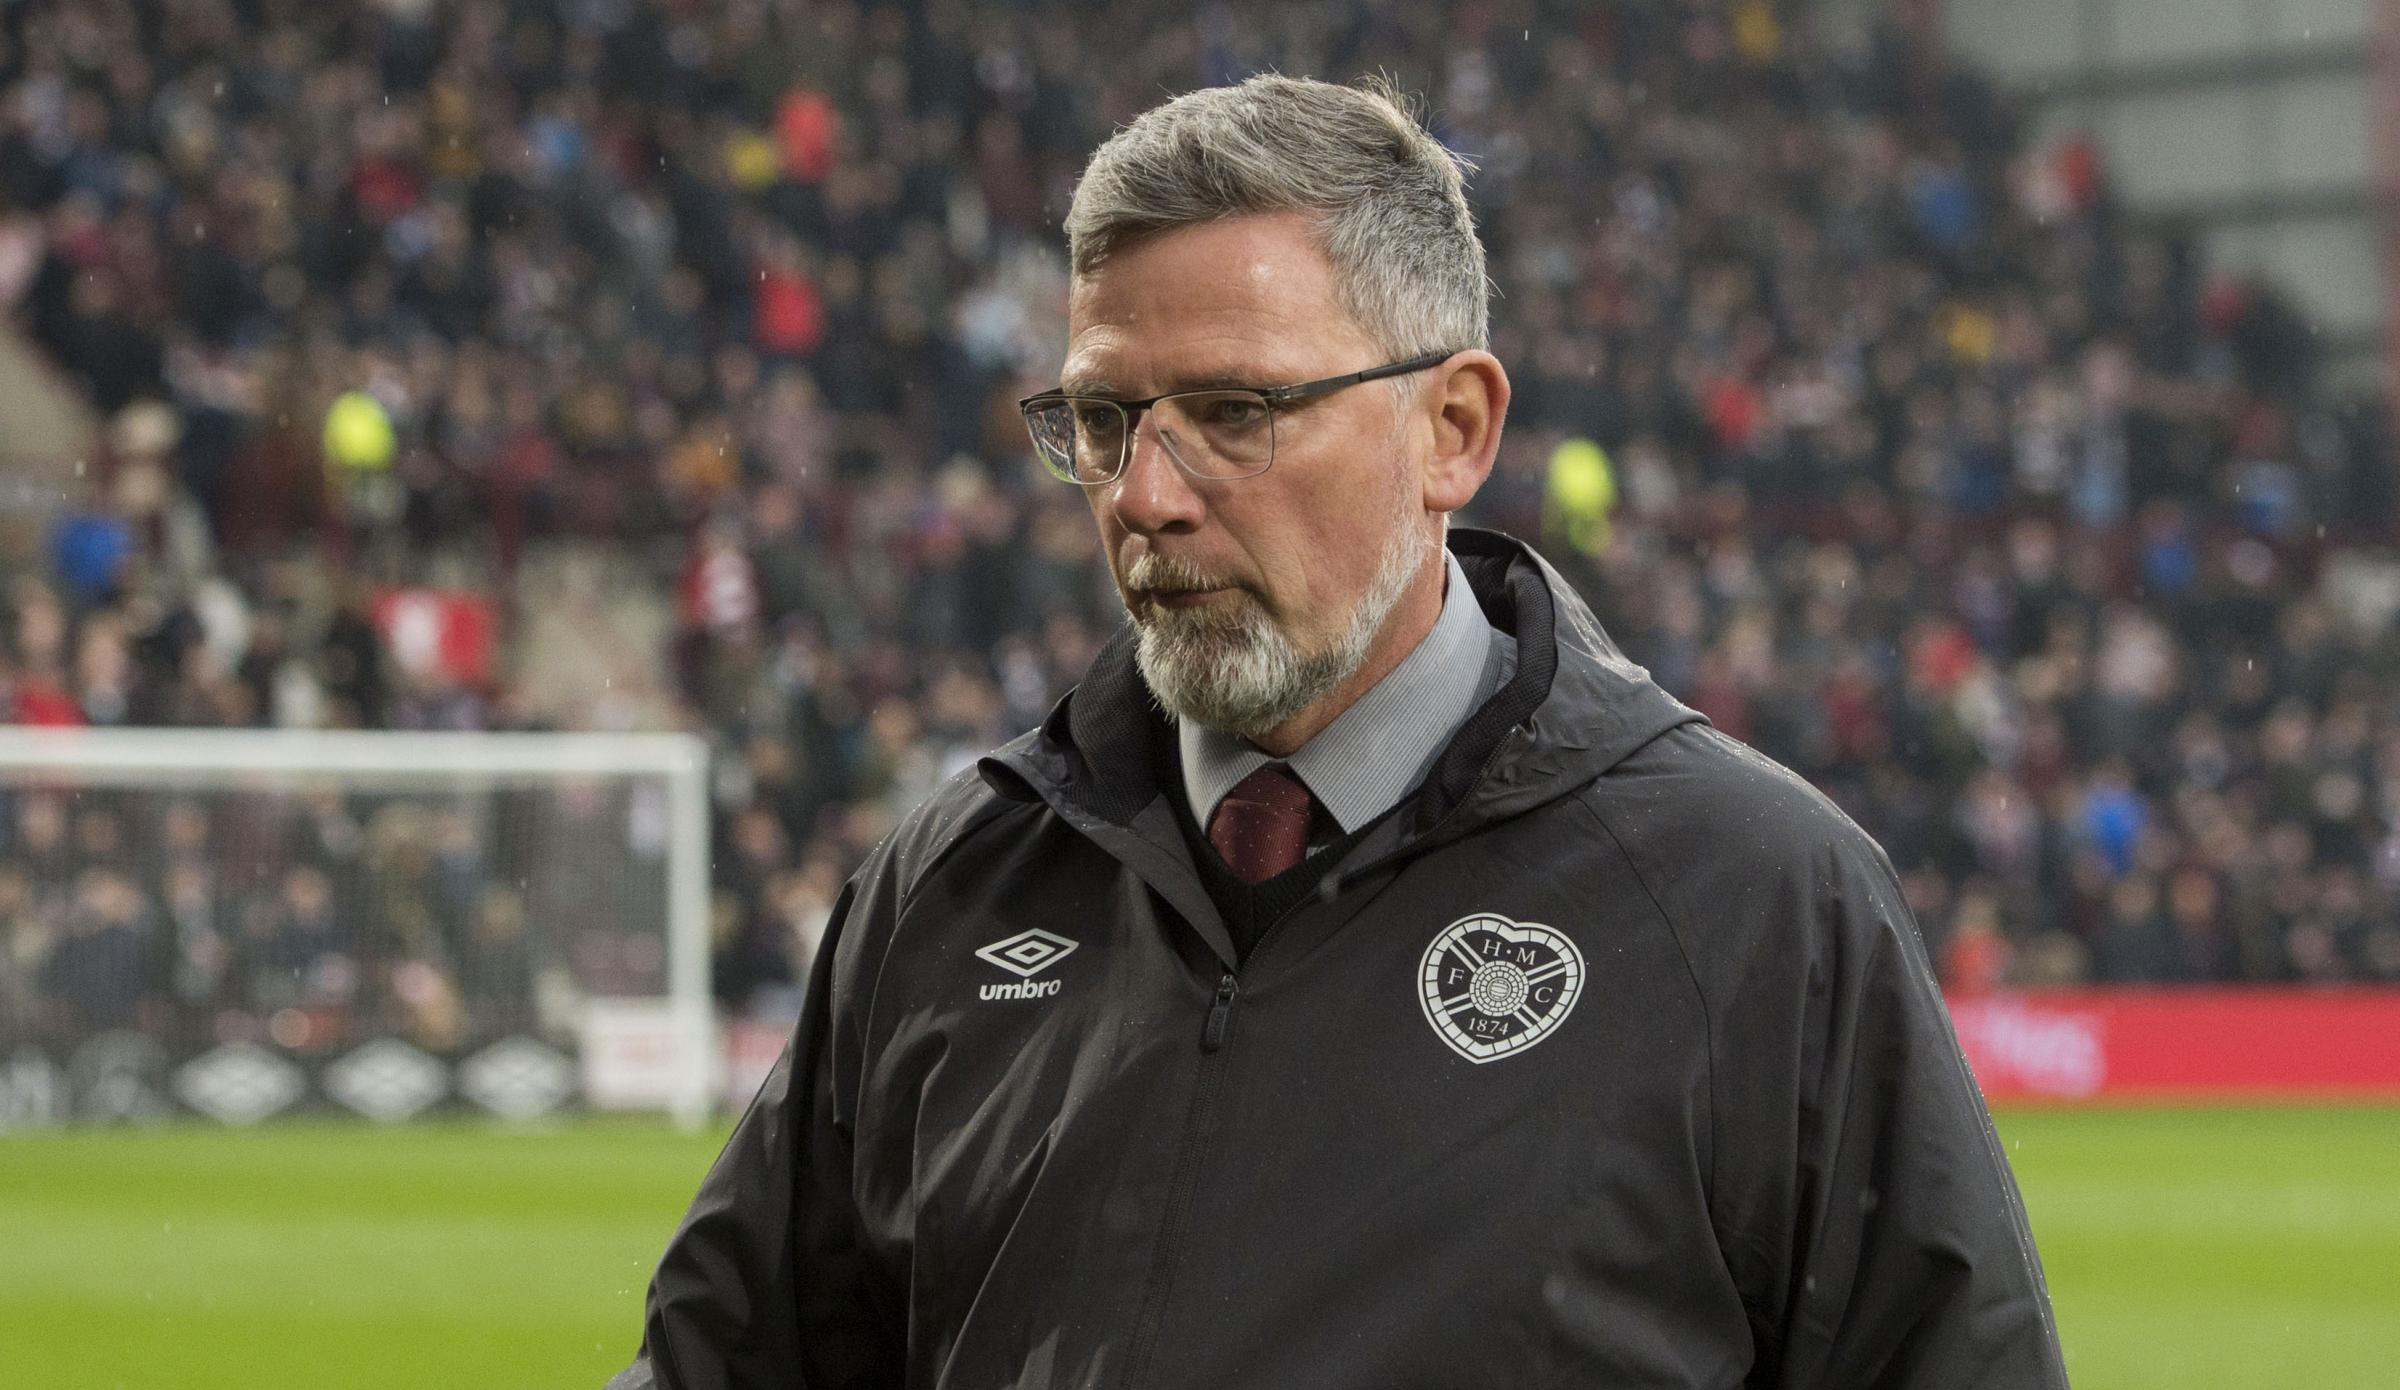 Hearts manager Craig Levein looks dejected at full time